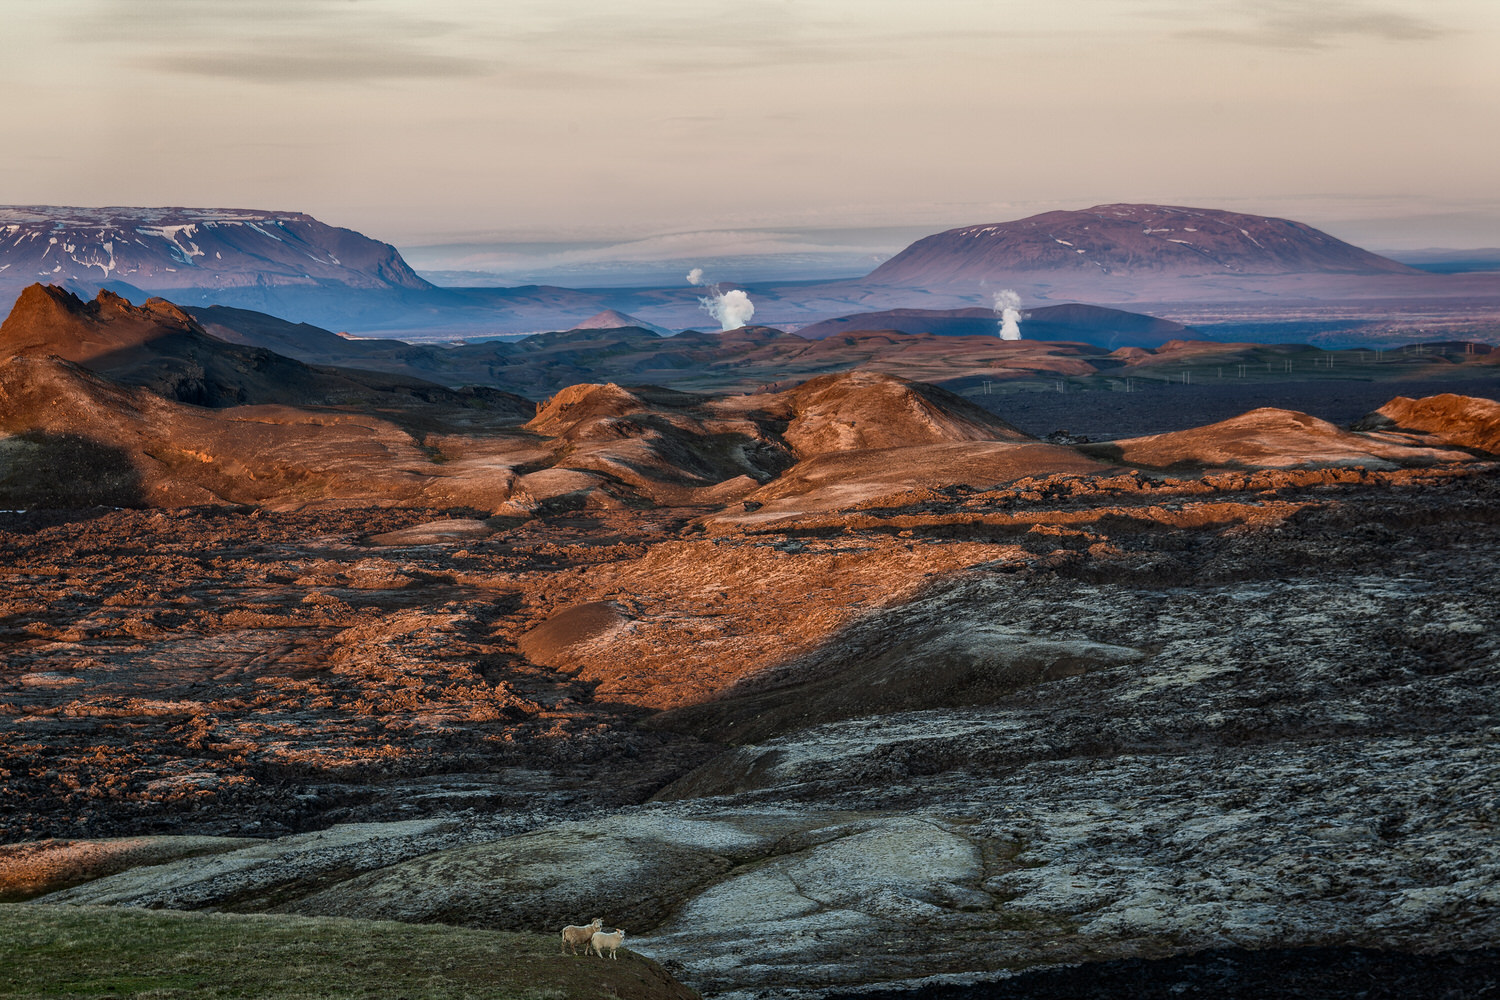 Sheep overlooking a view of ash and fumes at the    Leirhnjukur Lava Fields    in the Krafla vocanic area near    Myvatn    in    Northern Iceland   .